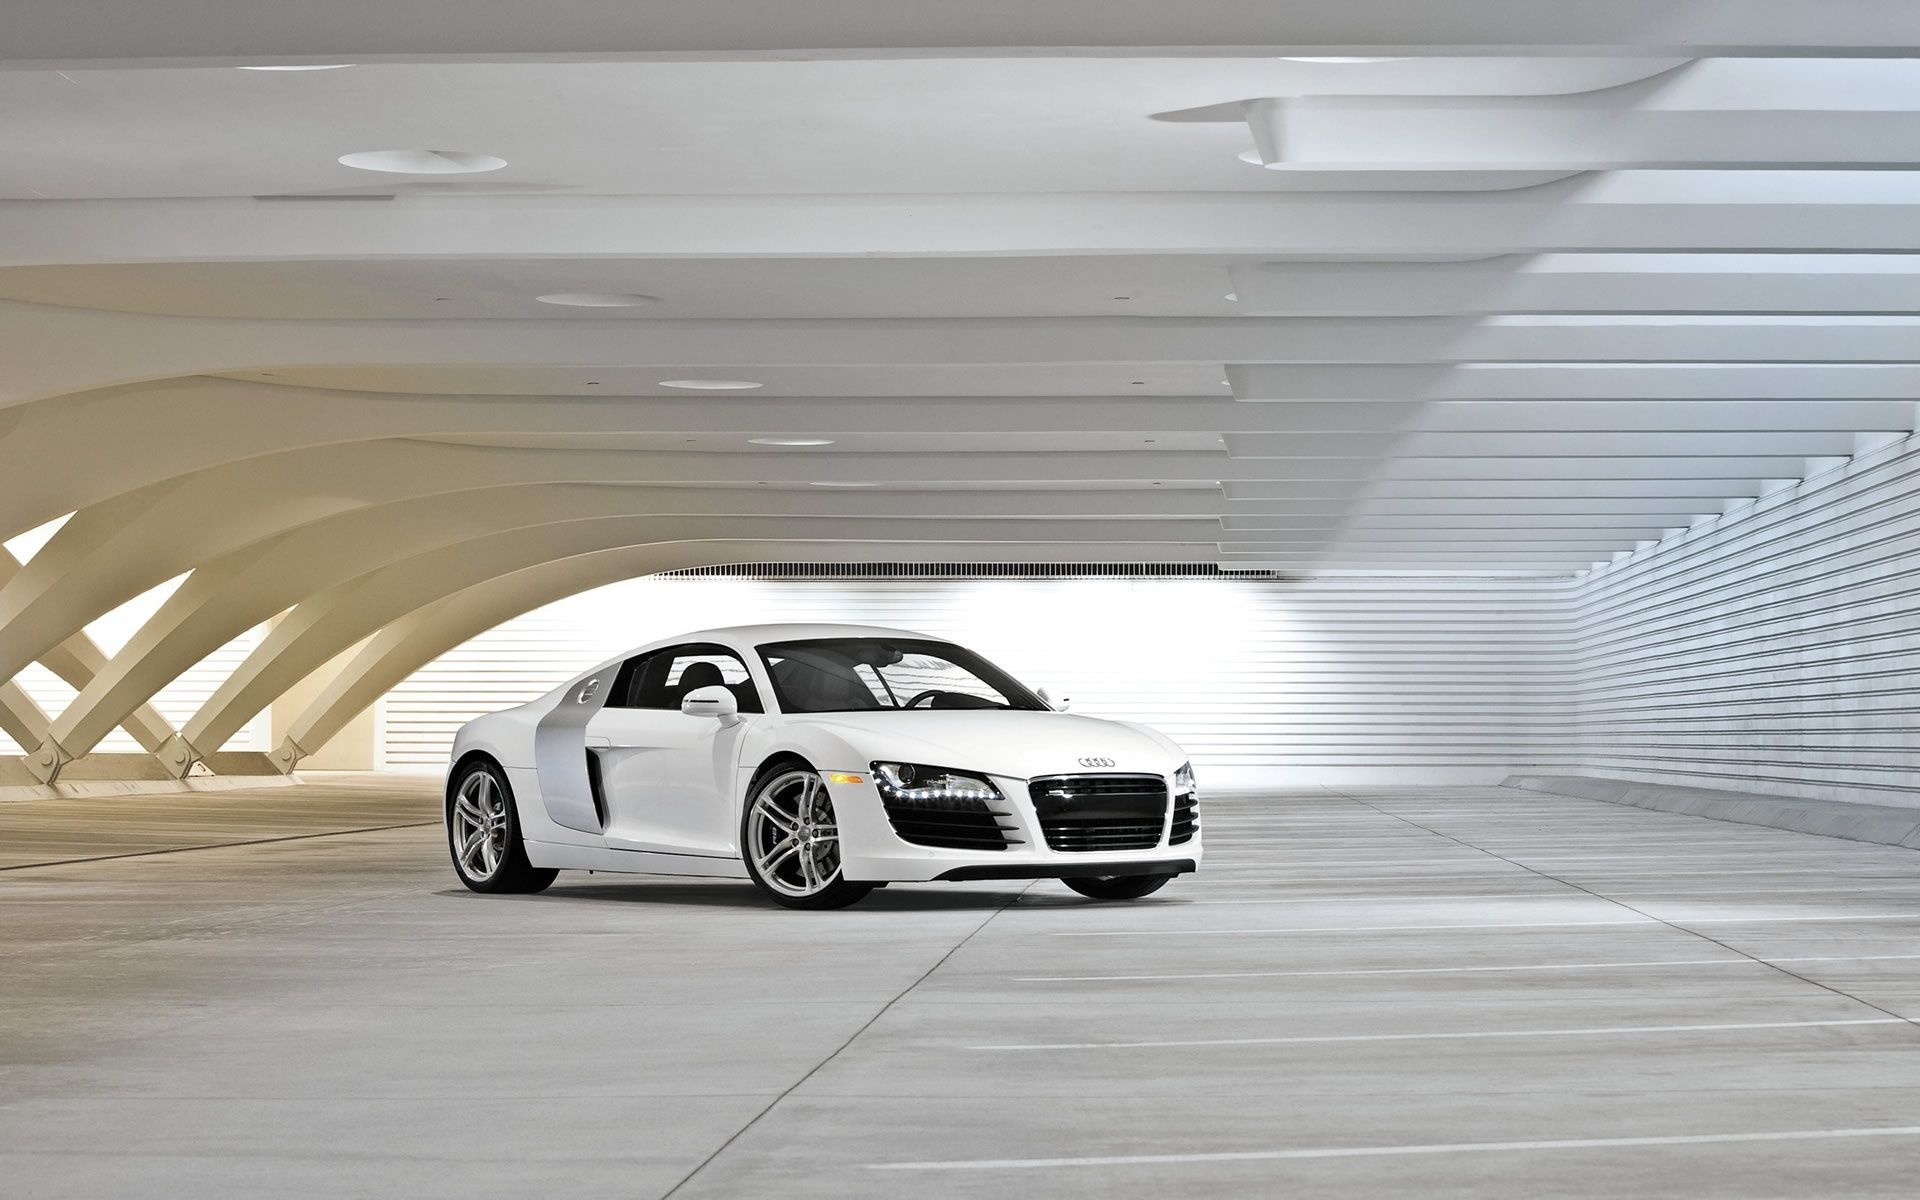 Audi R8 Wallpapers Backgrounds Pictures Photos Laptop Wallpapers Audi Audi R8 Wallpapers White Car